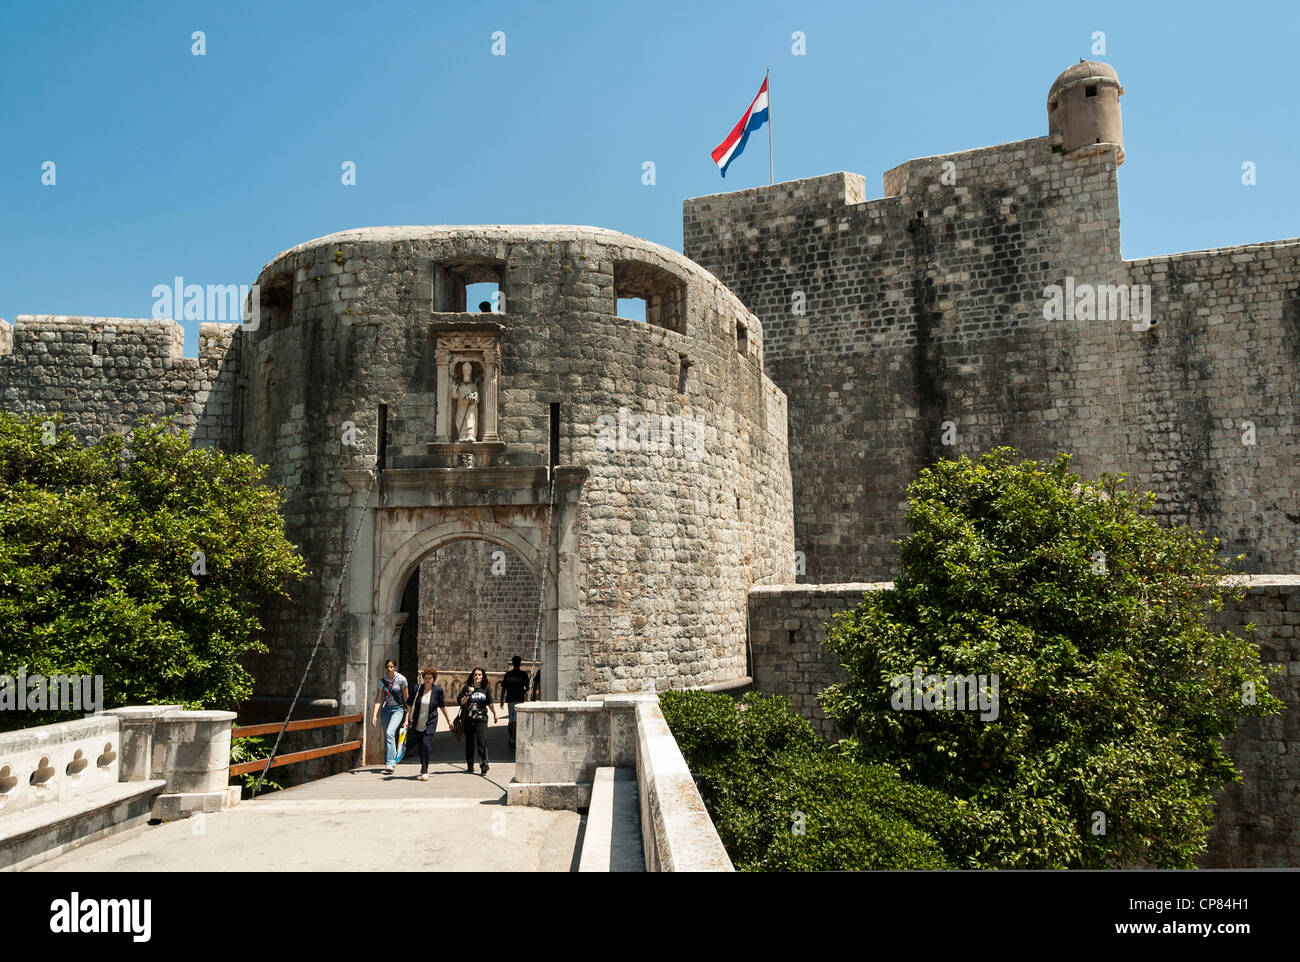 Pile Gate entrance to the old town with city walls in Dubrovnik, Croatia, Europe - Stock Image